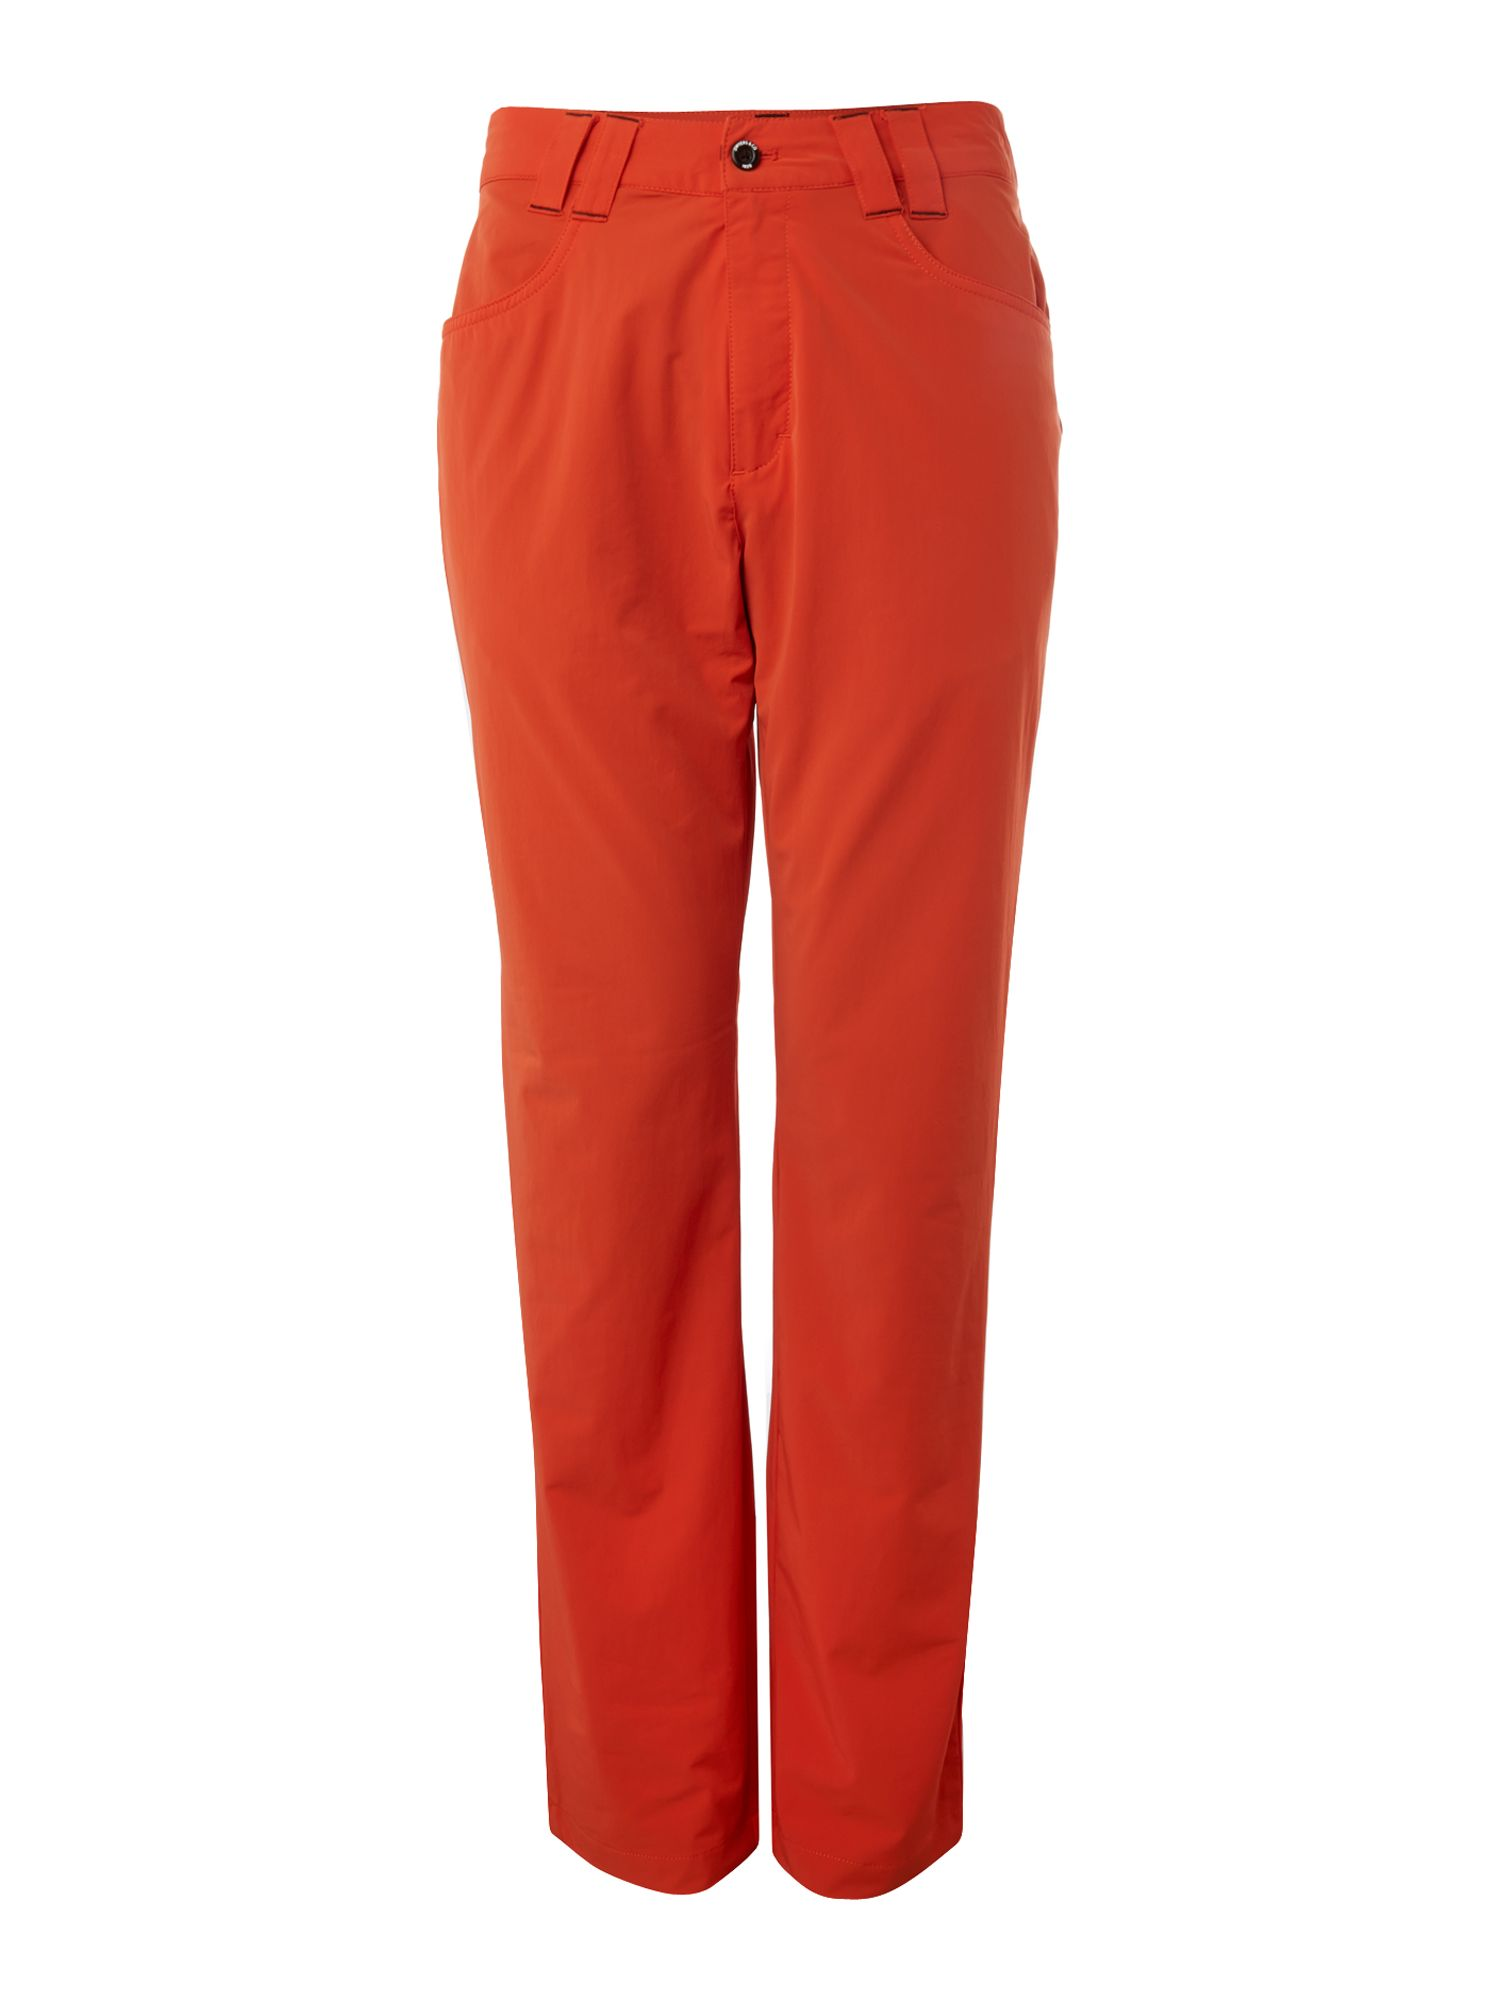 Motion pro fleece lined trouser